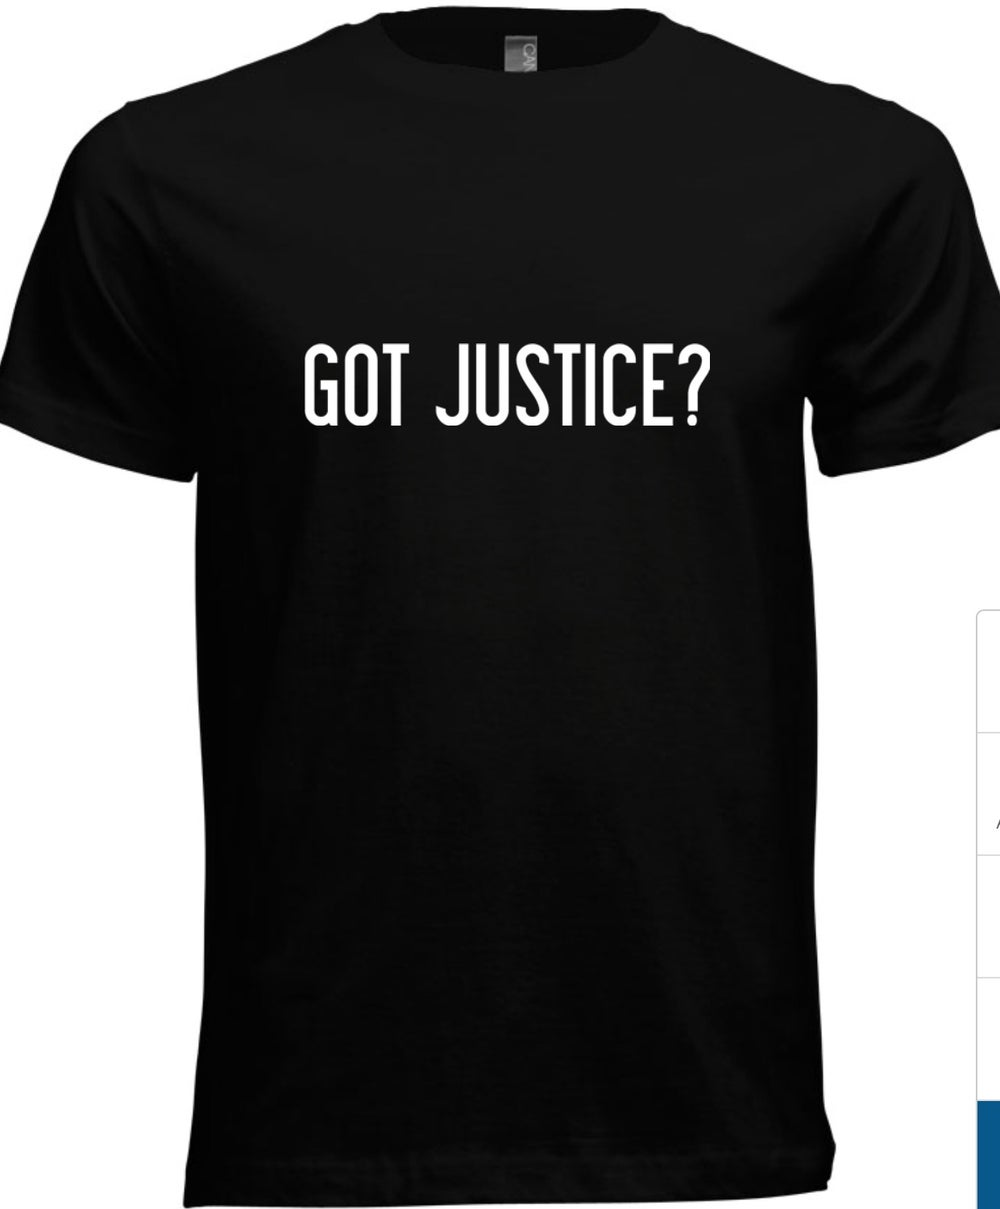 Image of MEN'S GOT JUSTICE (T-Shirt will reflect Jeremiah 22:3)